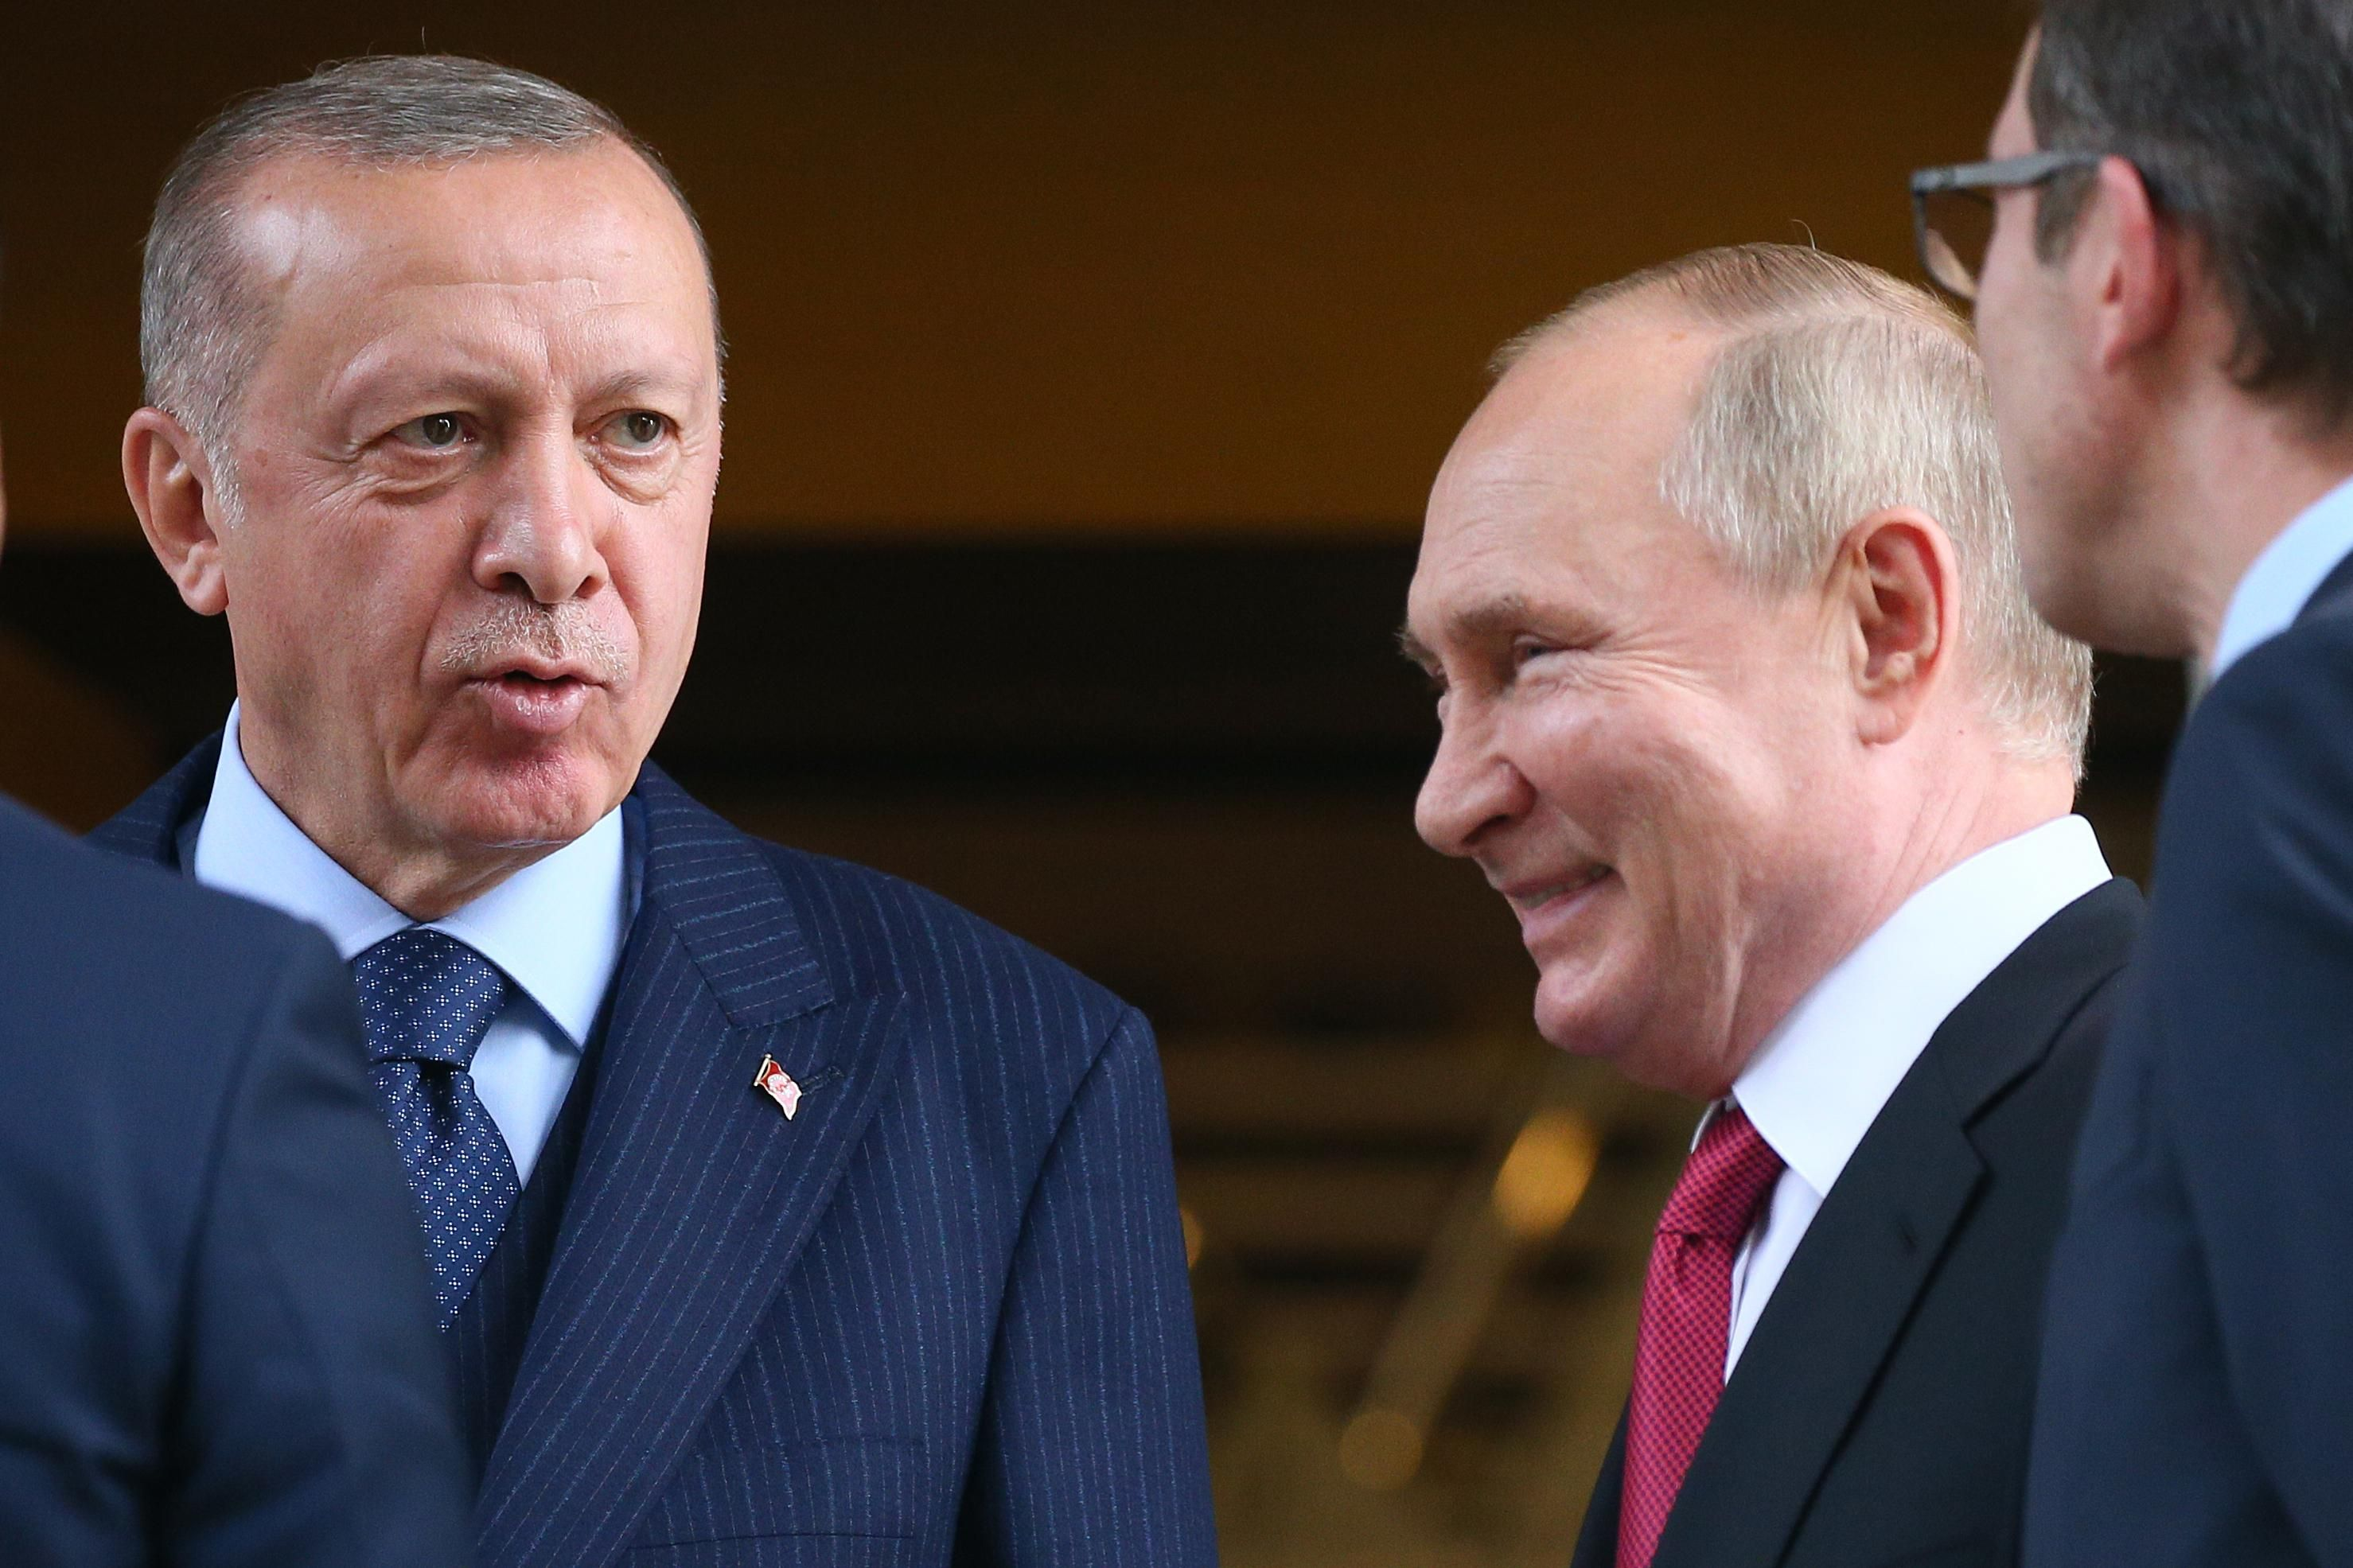 Hard Numbers: Turkish-Russian antibody clash. Arab world gets 1st female PM, hidden debt to China, US leads rich world in COVID deaths